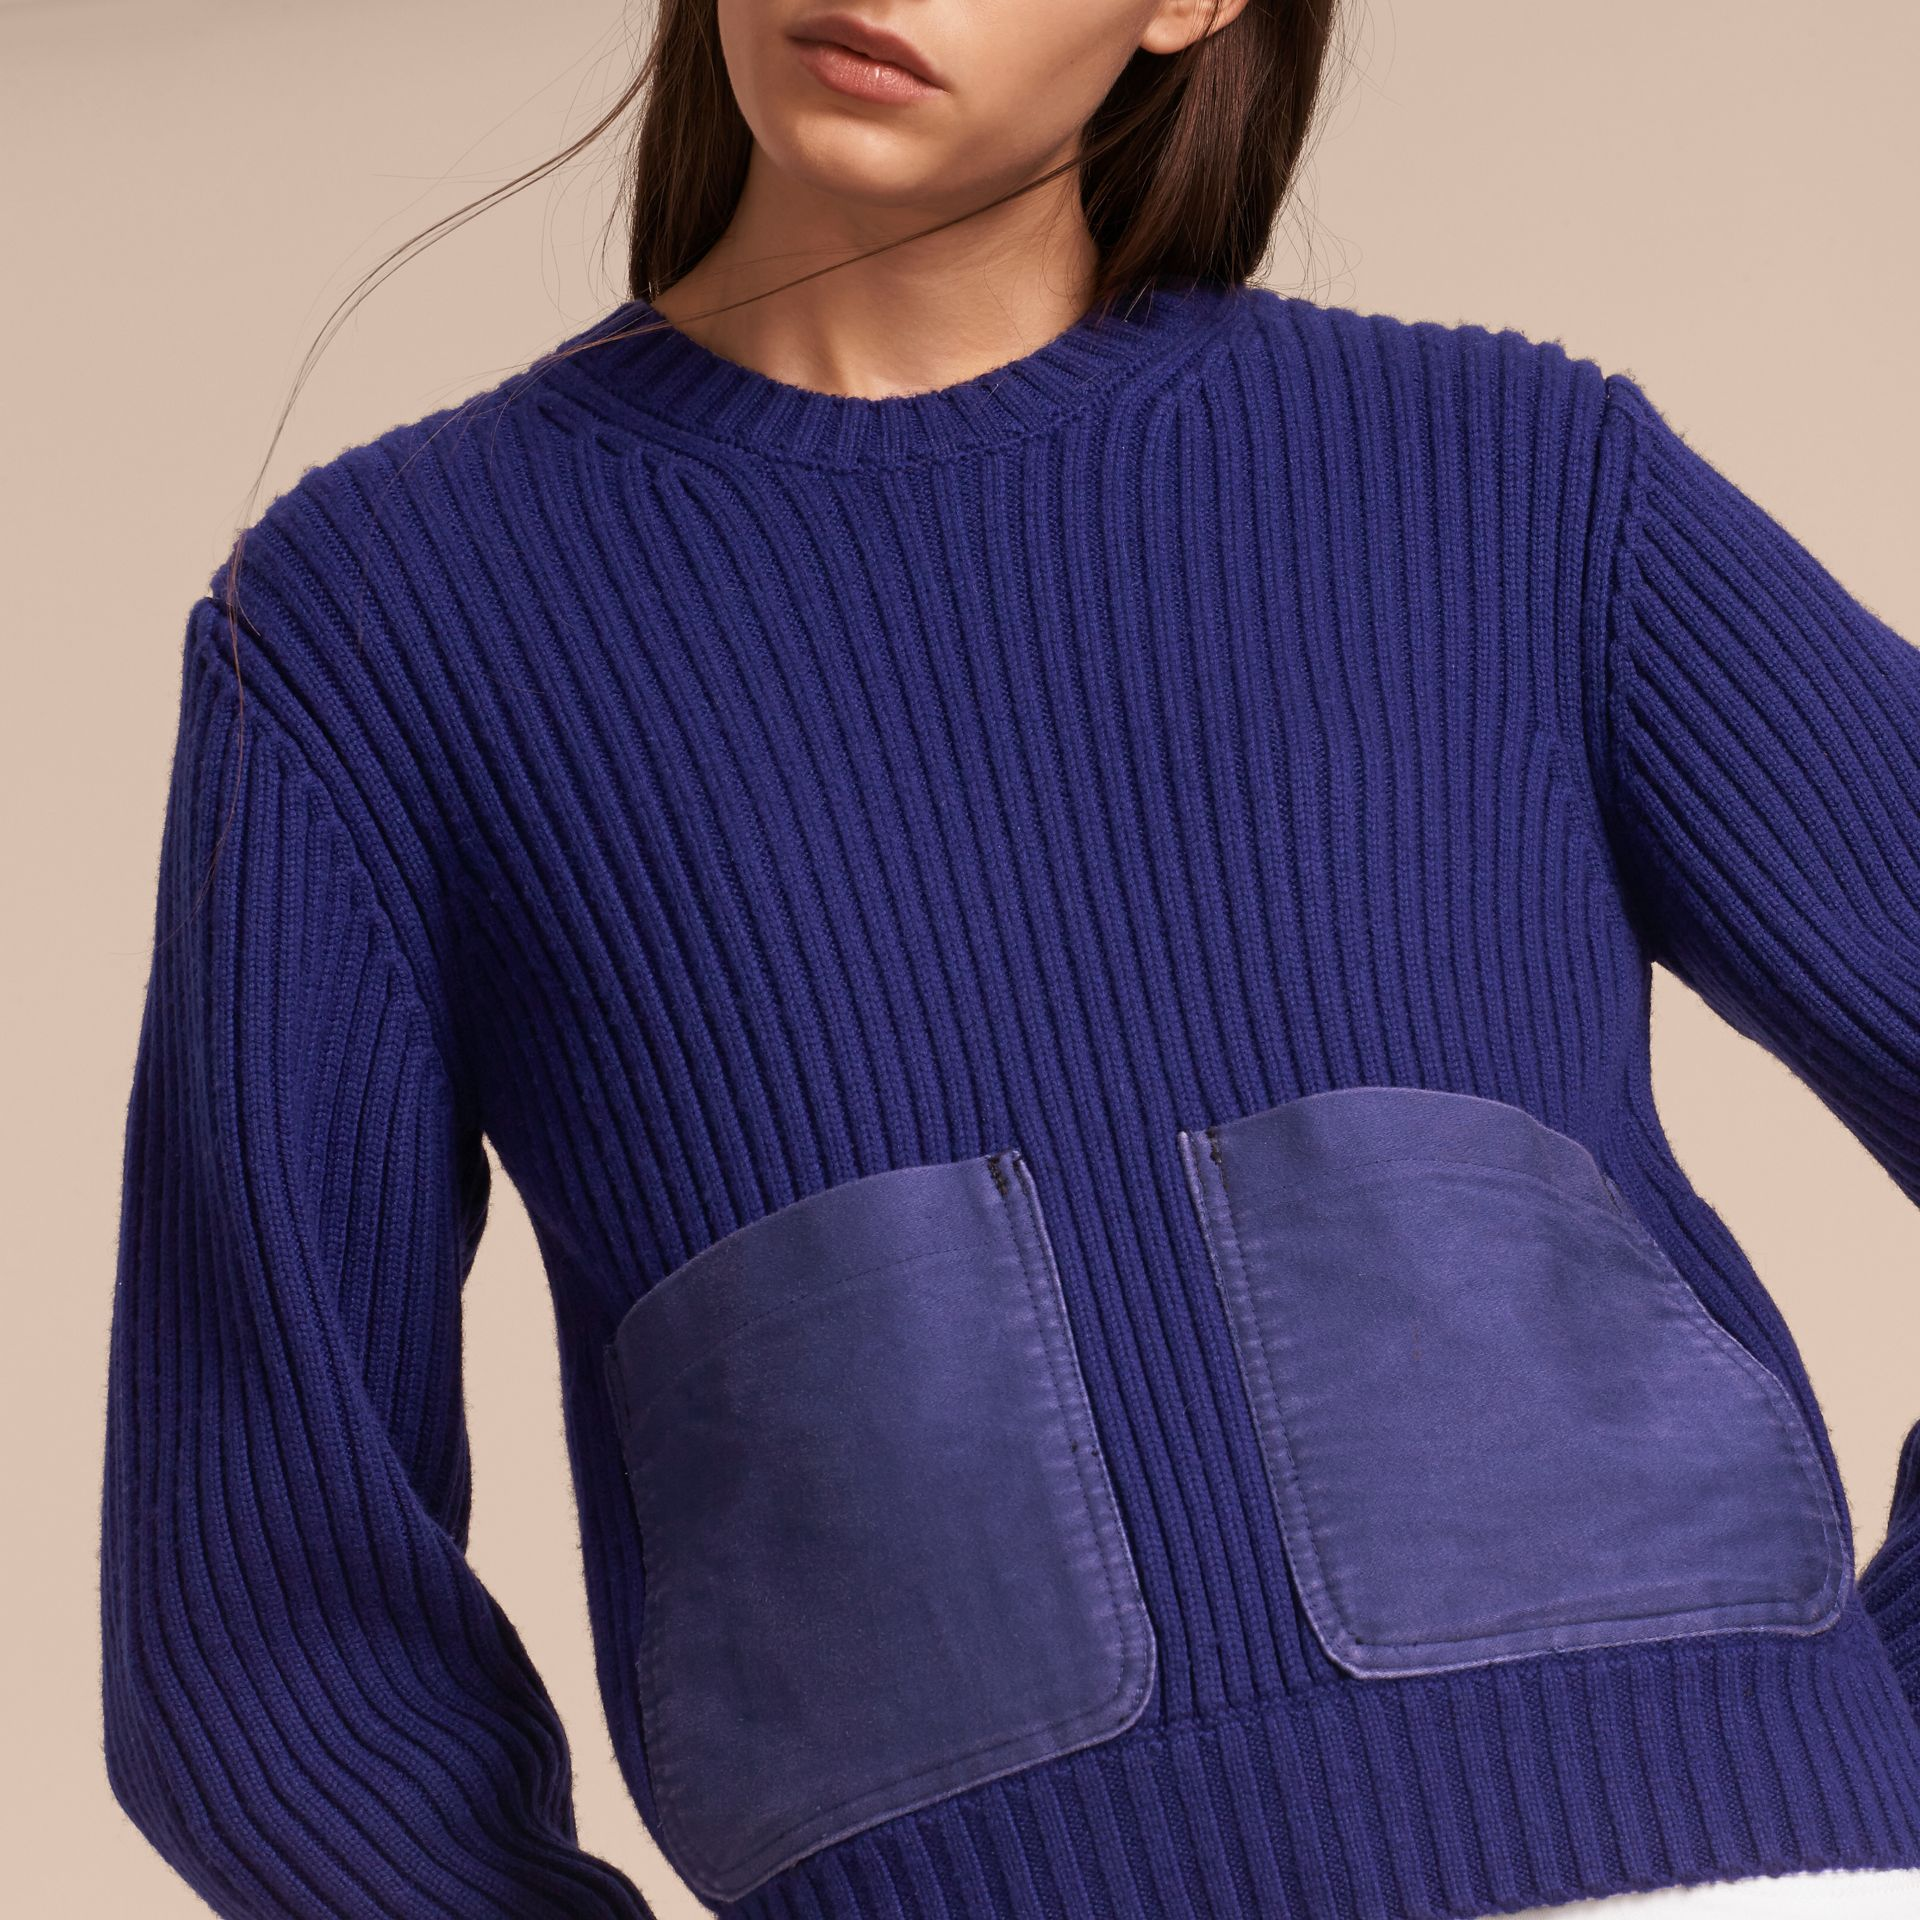 Oversize Pocket Detail Rib Knit Cashmere Cotton Sweater in Bright Navy - Women | Burberry - gallery image 5